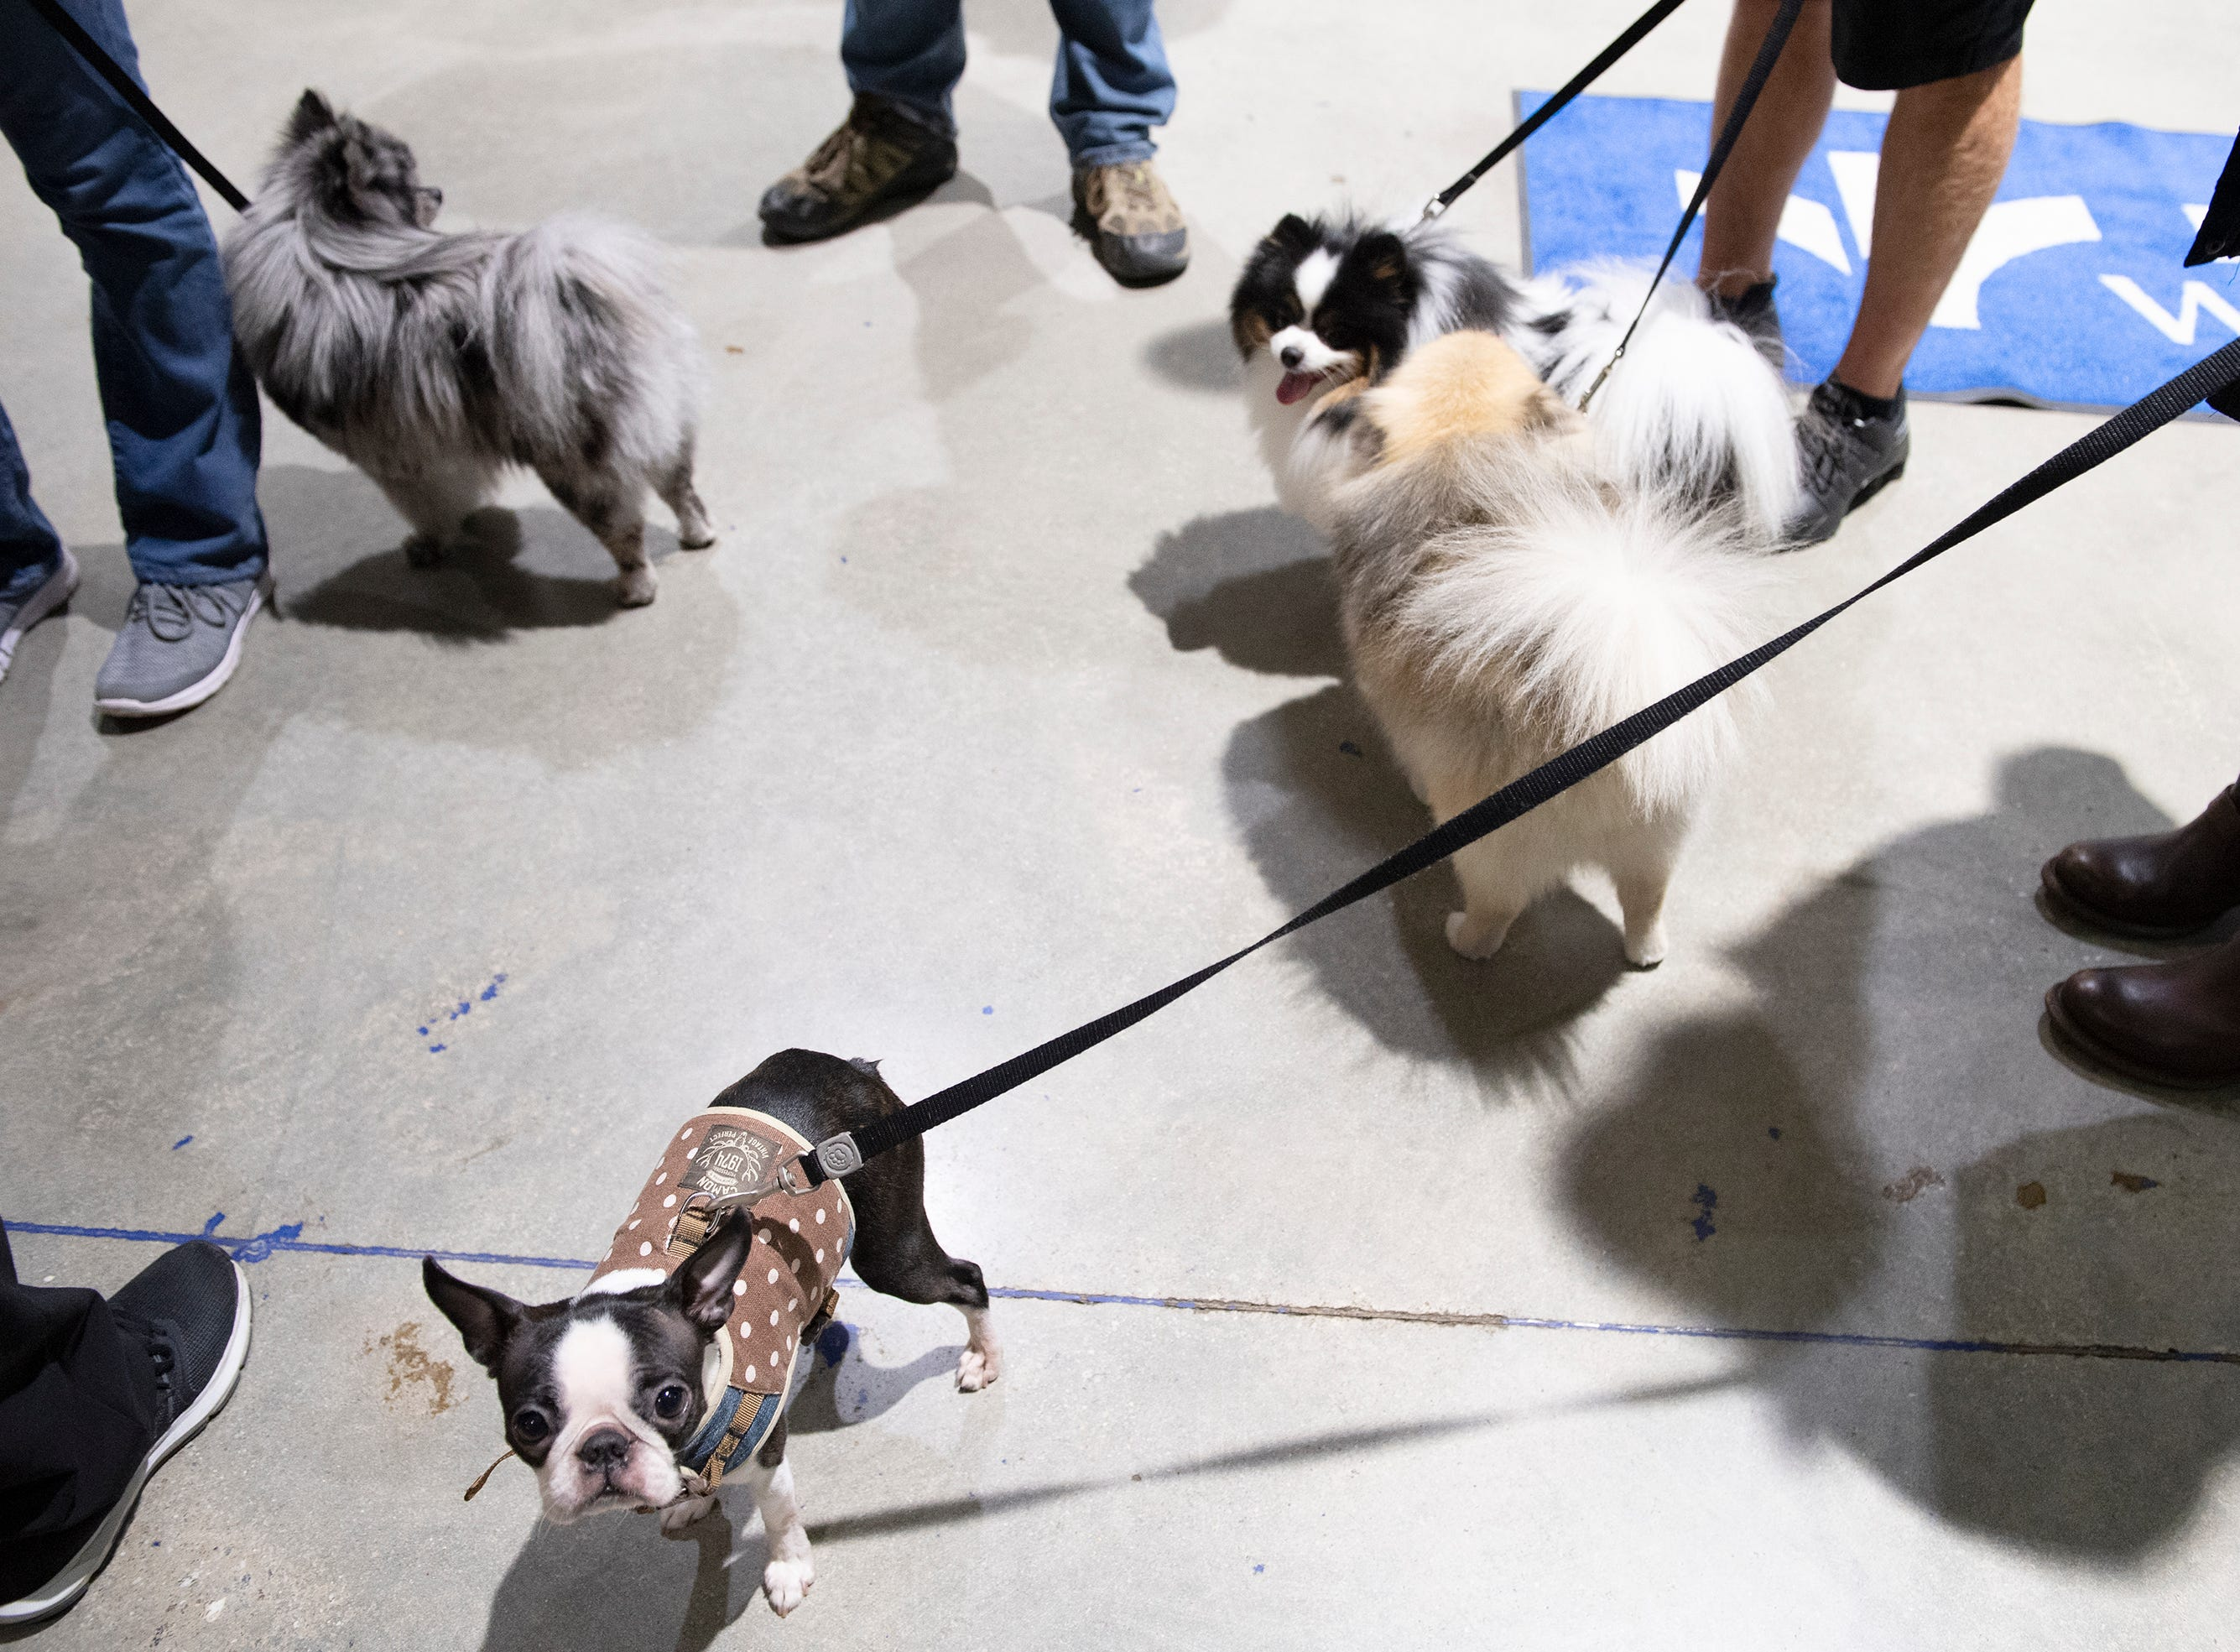 Piper (bottom), Bandit, Smokey and Diva attend Pucks N' Paws night at Bon Secours Wellness Arena during the Greenville Swamp Rabbits game against the Florida Everblades Saturday, Feb. 2, 2019.